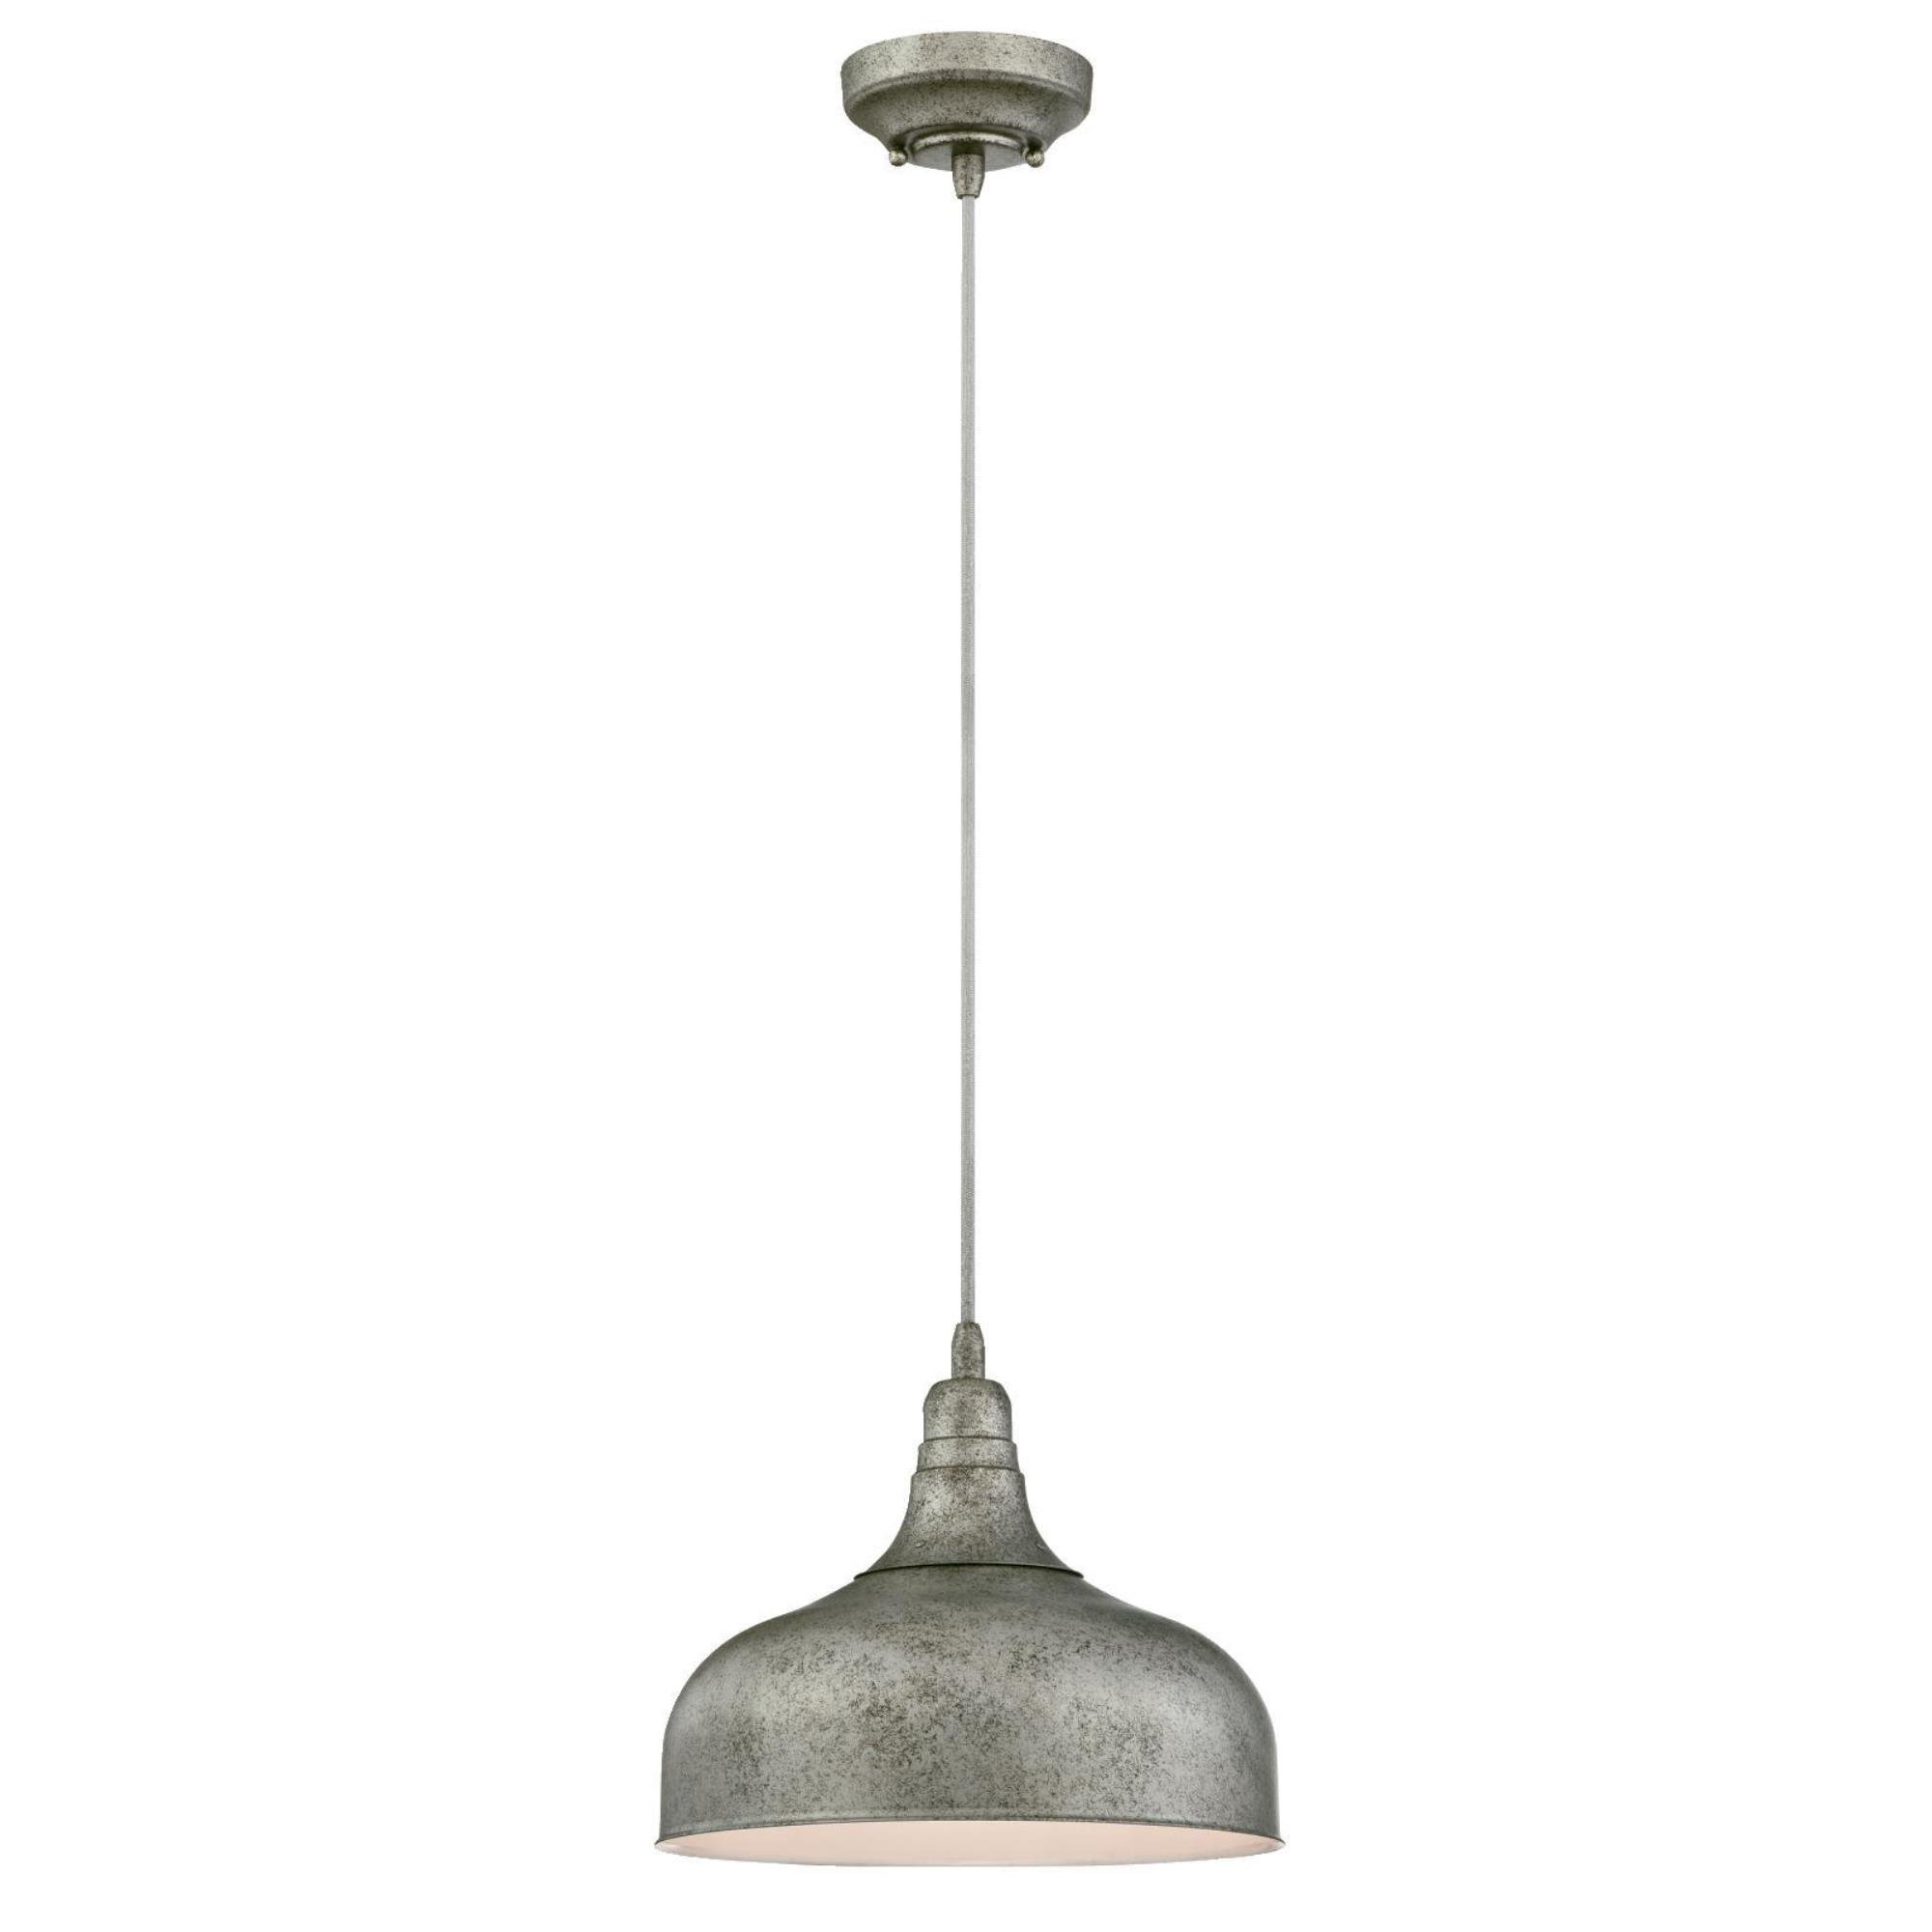 Westinghouse 6330100 One-Light Indoor Pendant, Antique Steel Finish with Metal Shade